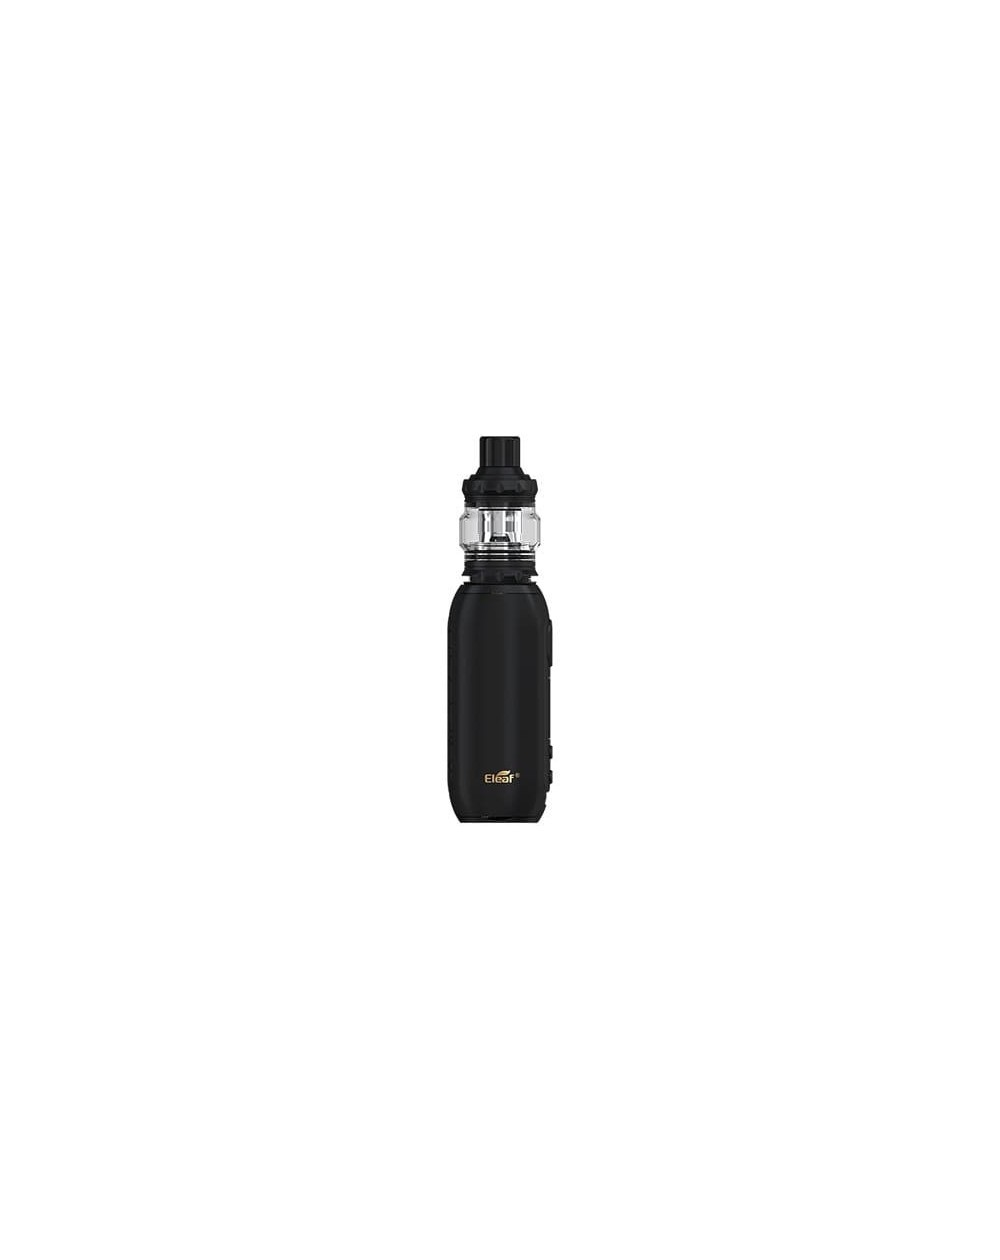 Kit Istick Rim C - Eleaf